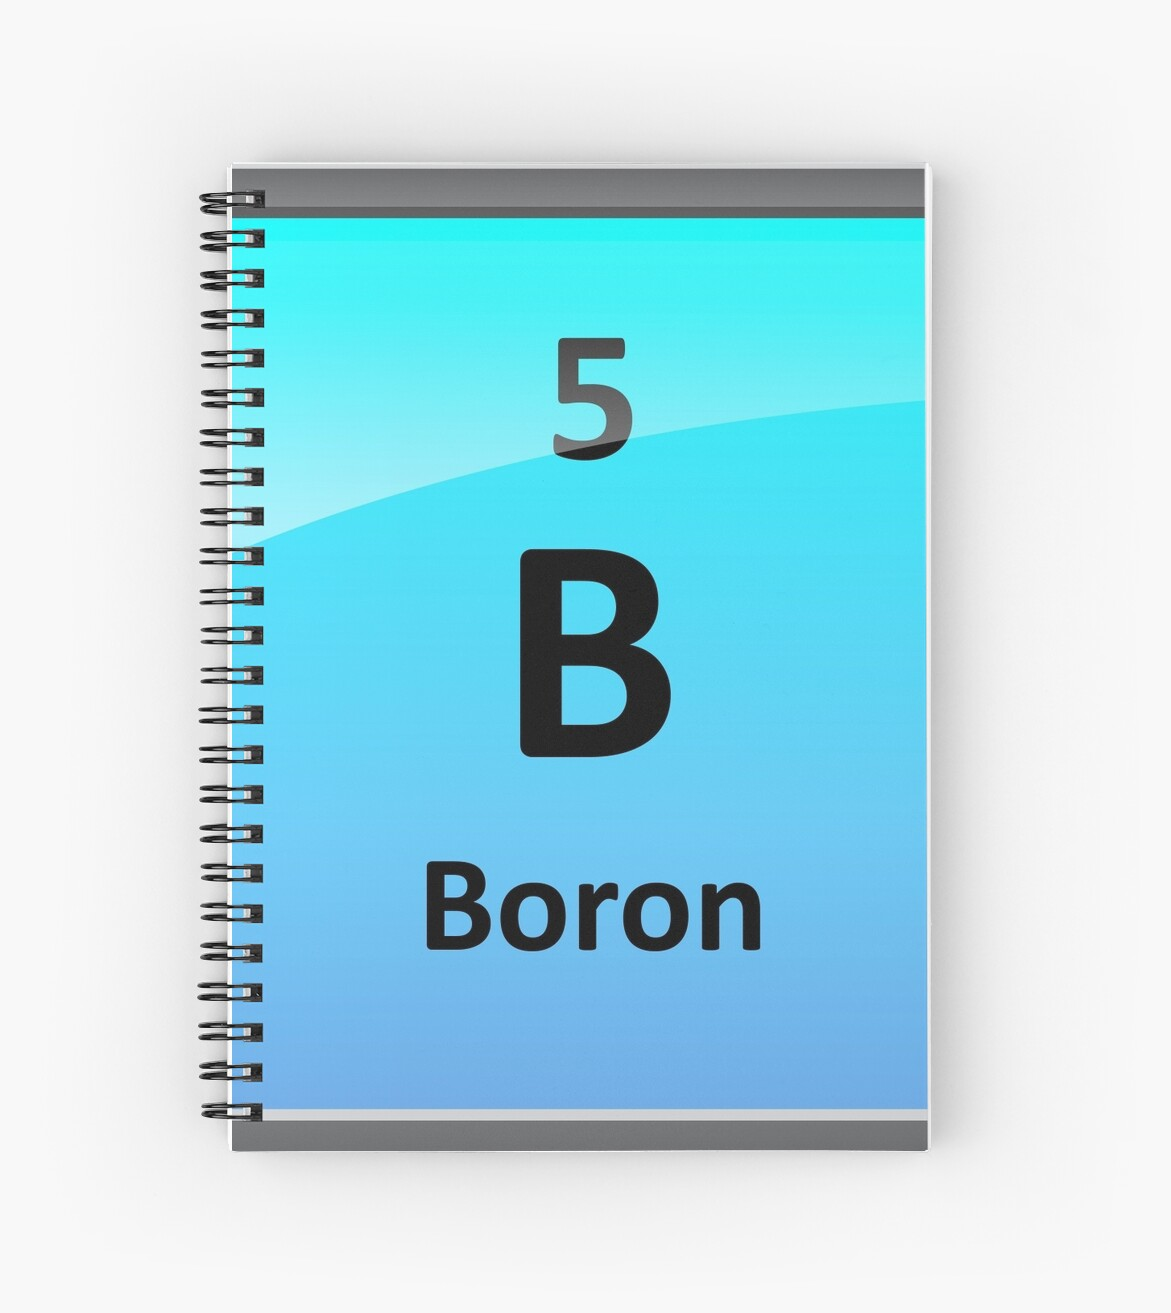 Boron Element Tile Periodic Table Spiral Notebook By Sciencenotes